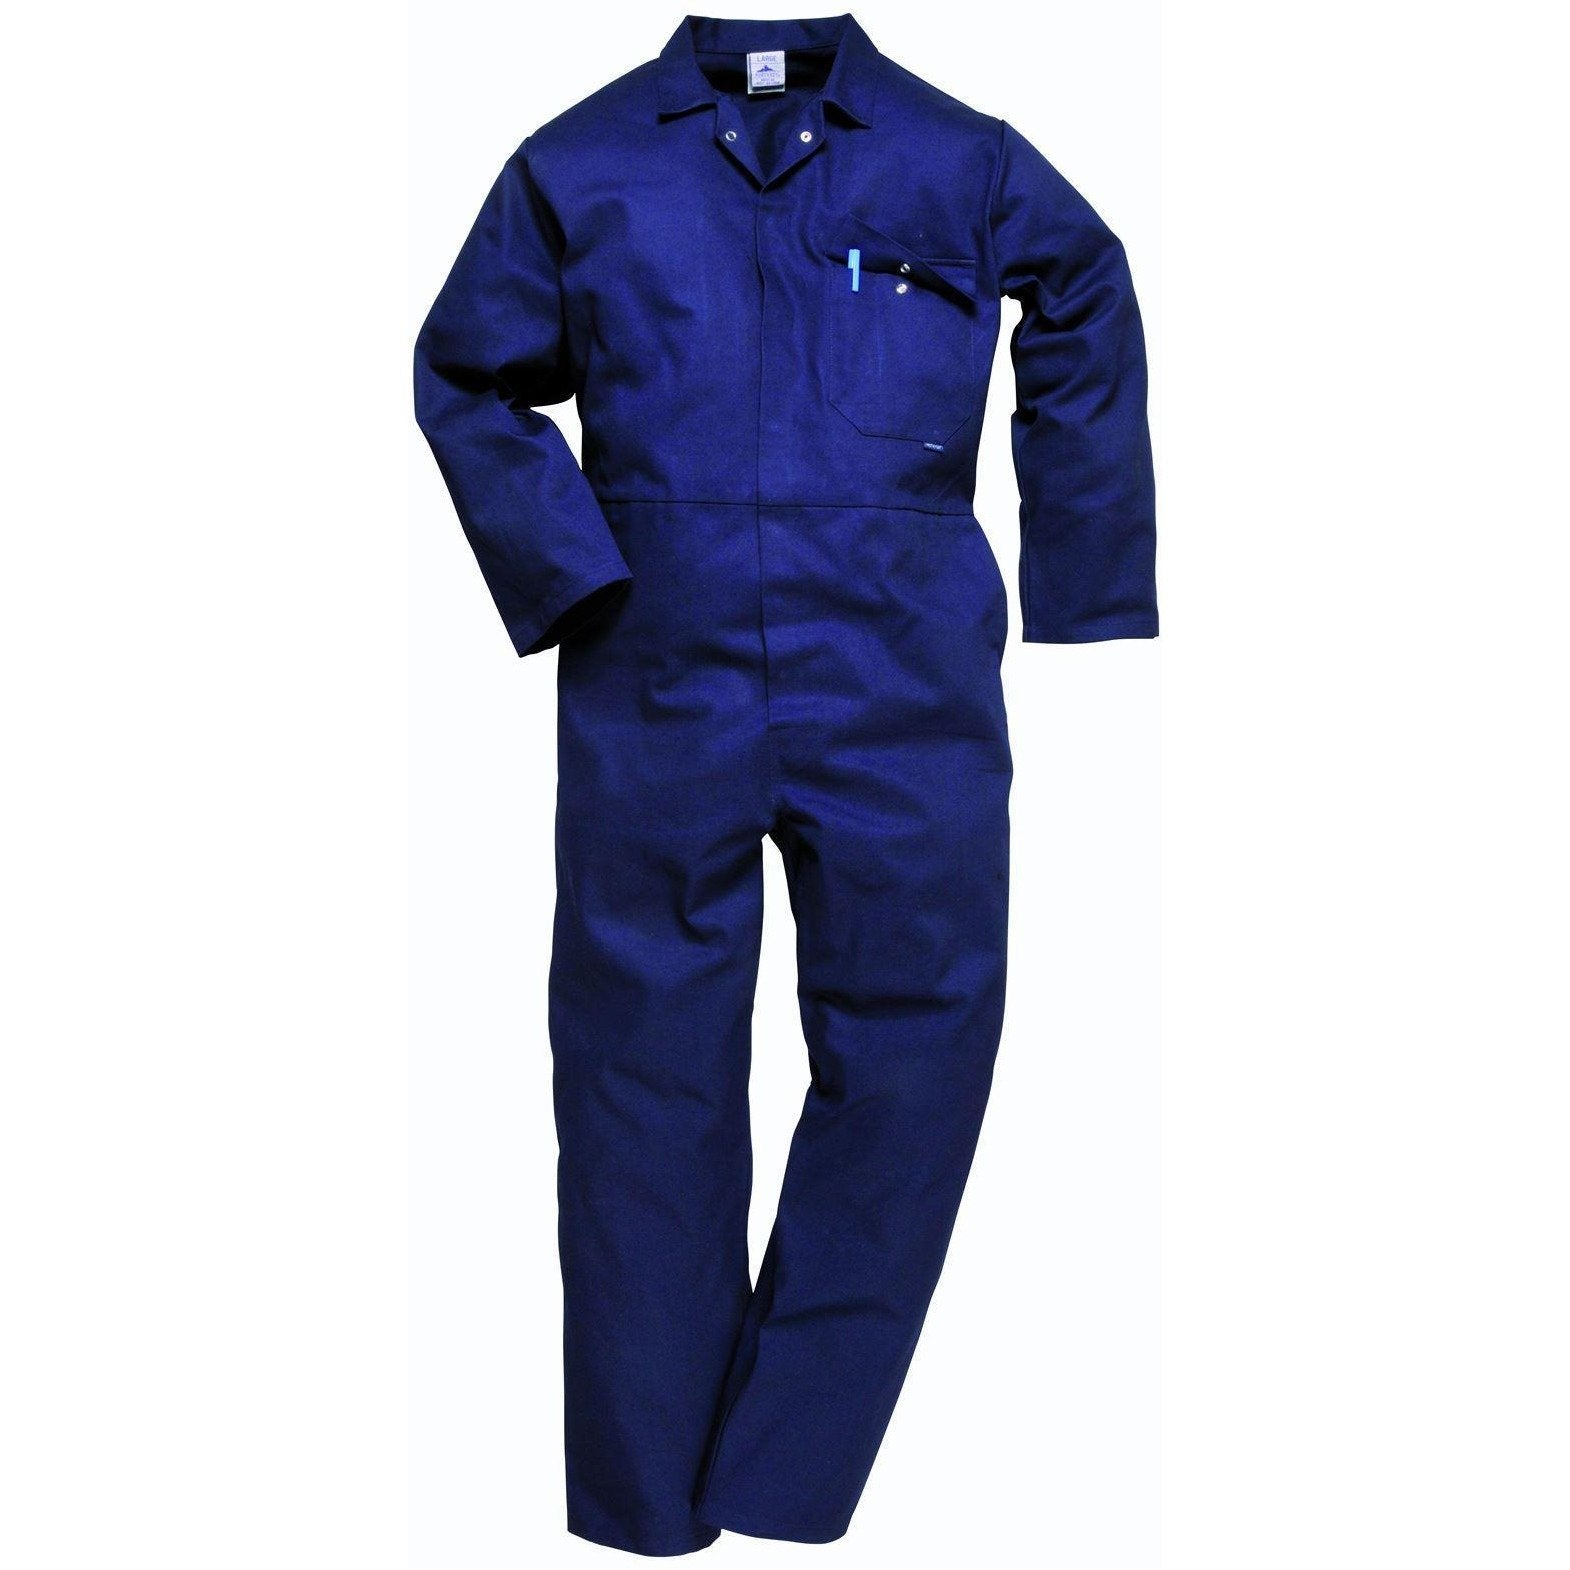 Portwest Cotton Coverall C806 - reid outdoors